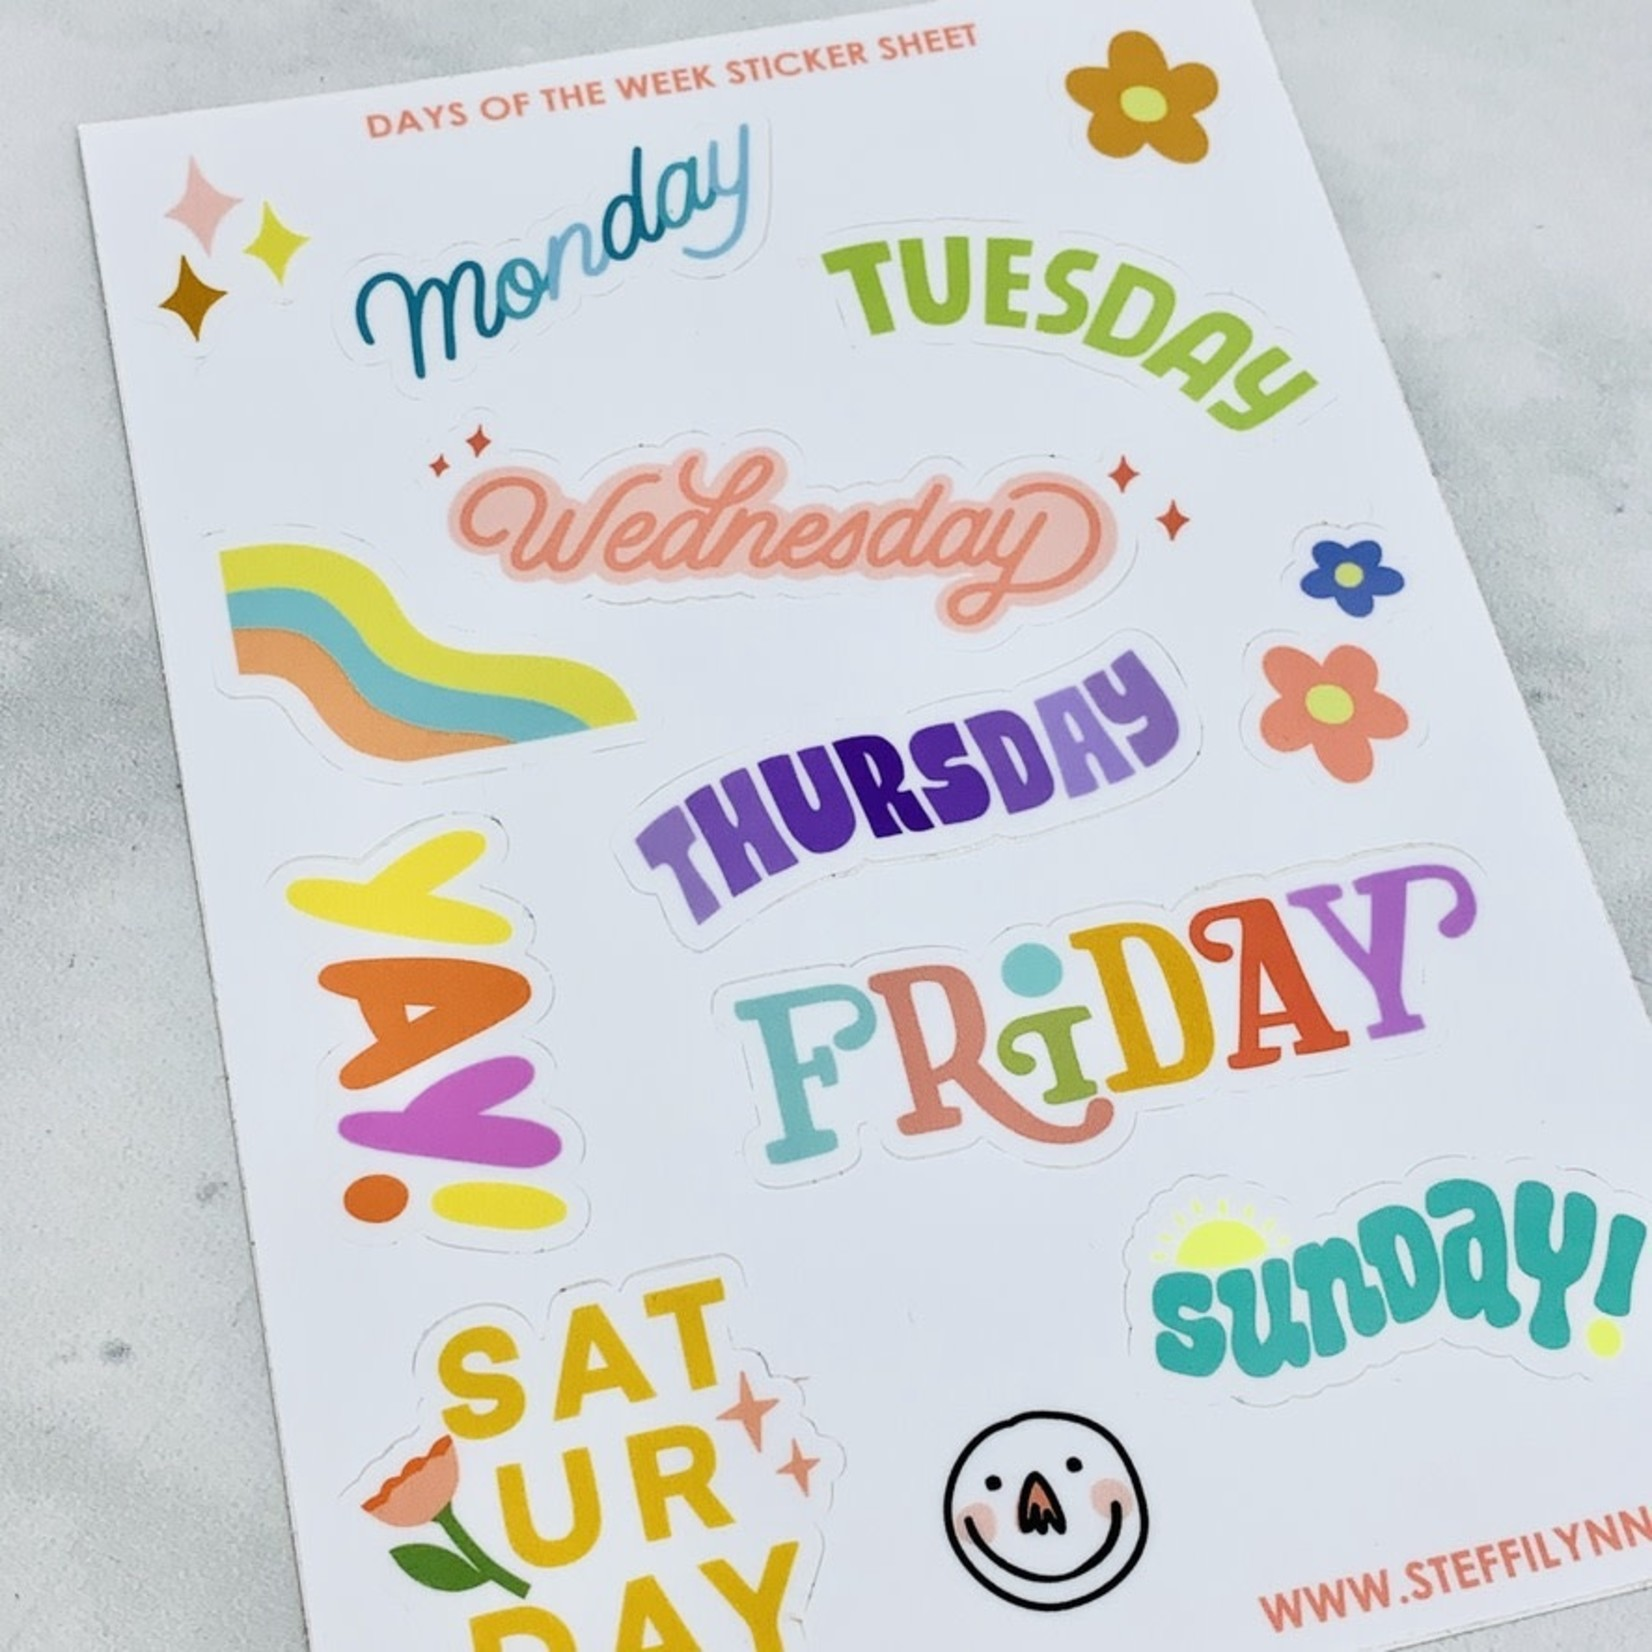 Have A Nice Day c/o Faire Week Days Sticker Sheet